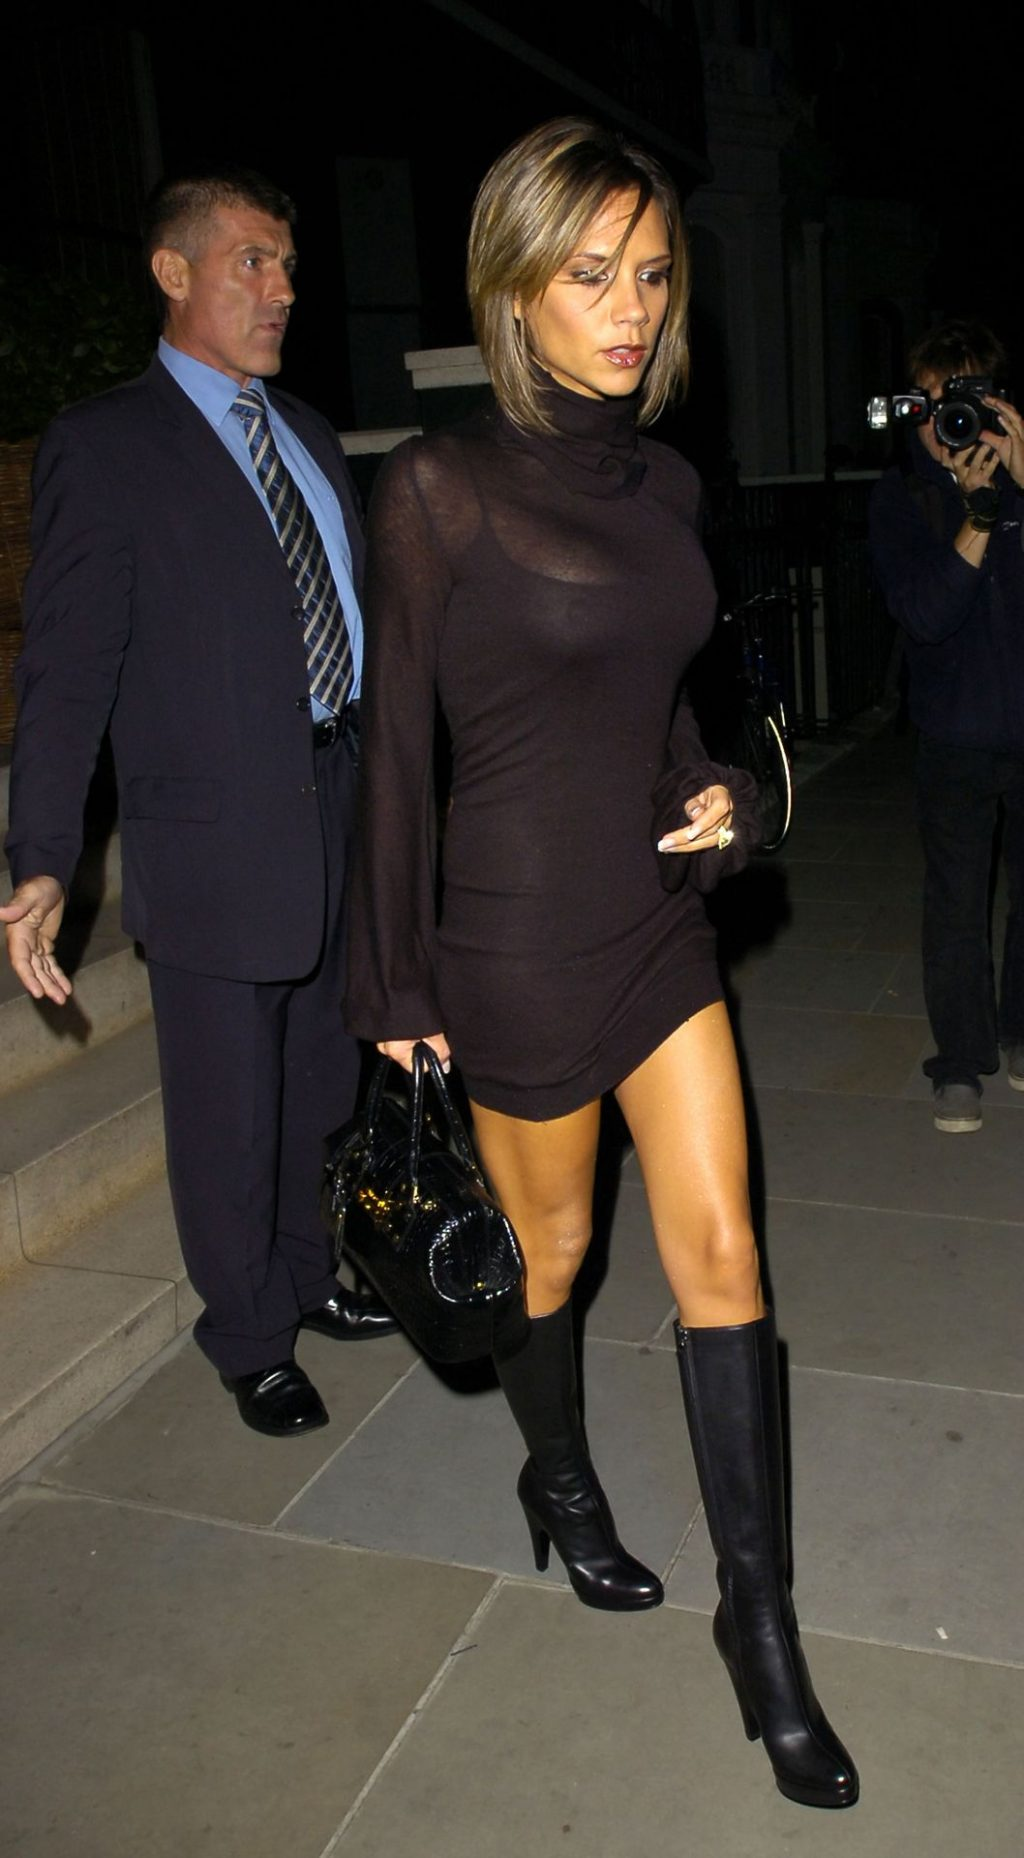 Victoria Beckham Shows Off Her Tits in a Sheer Dress (50 Photos)